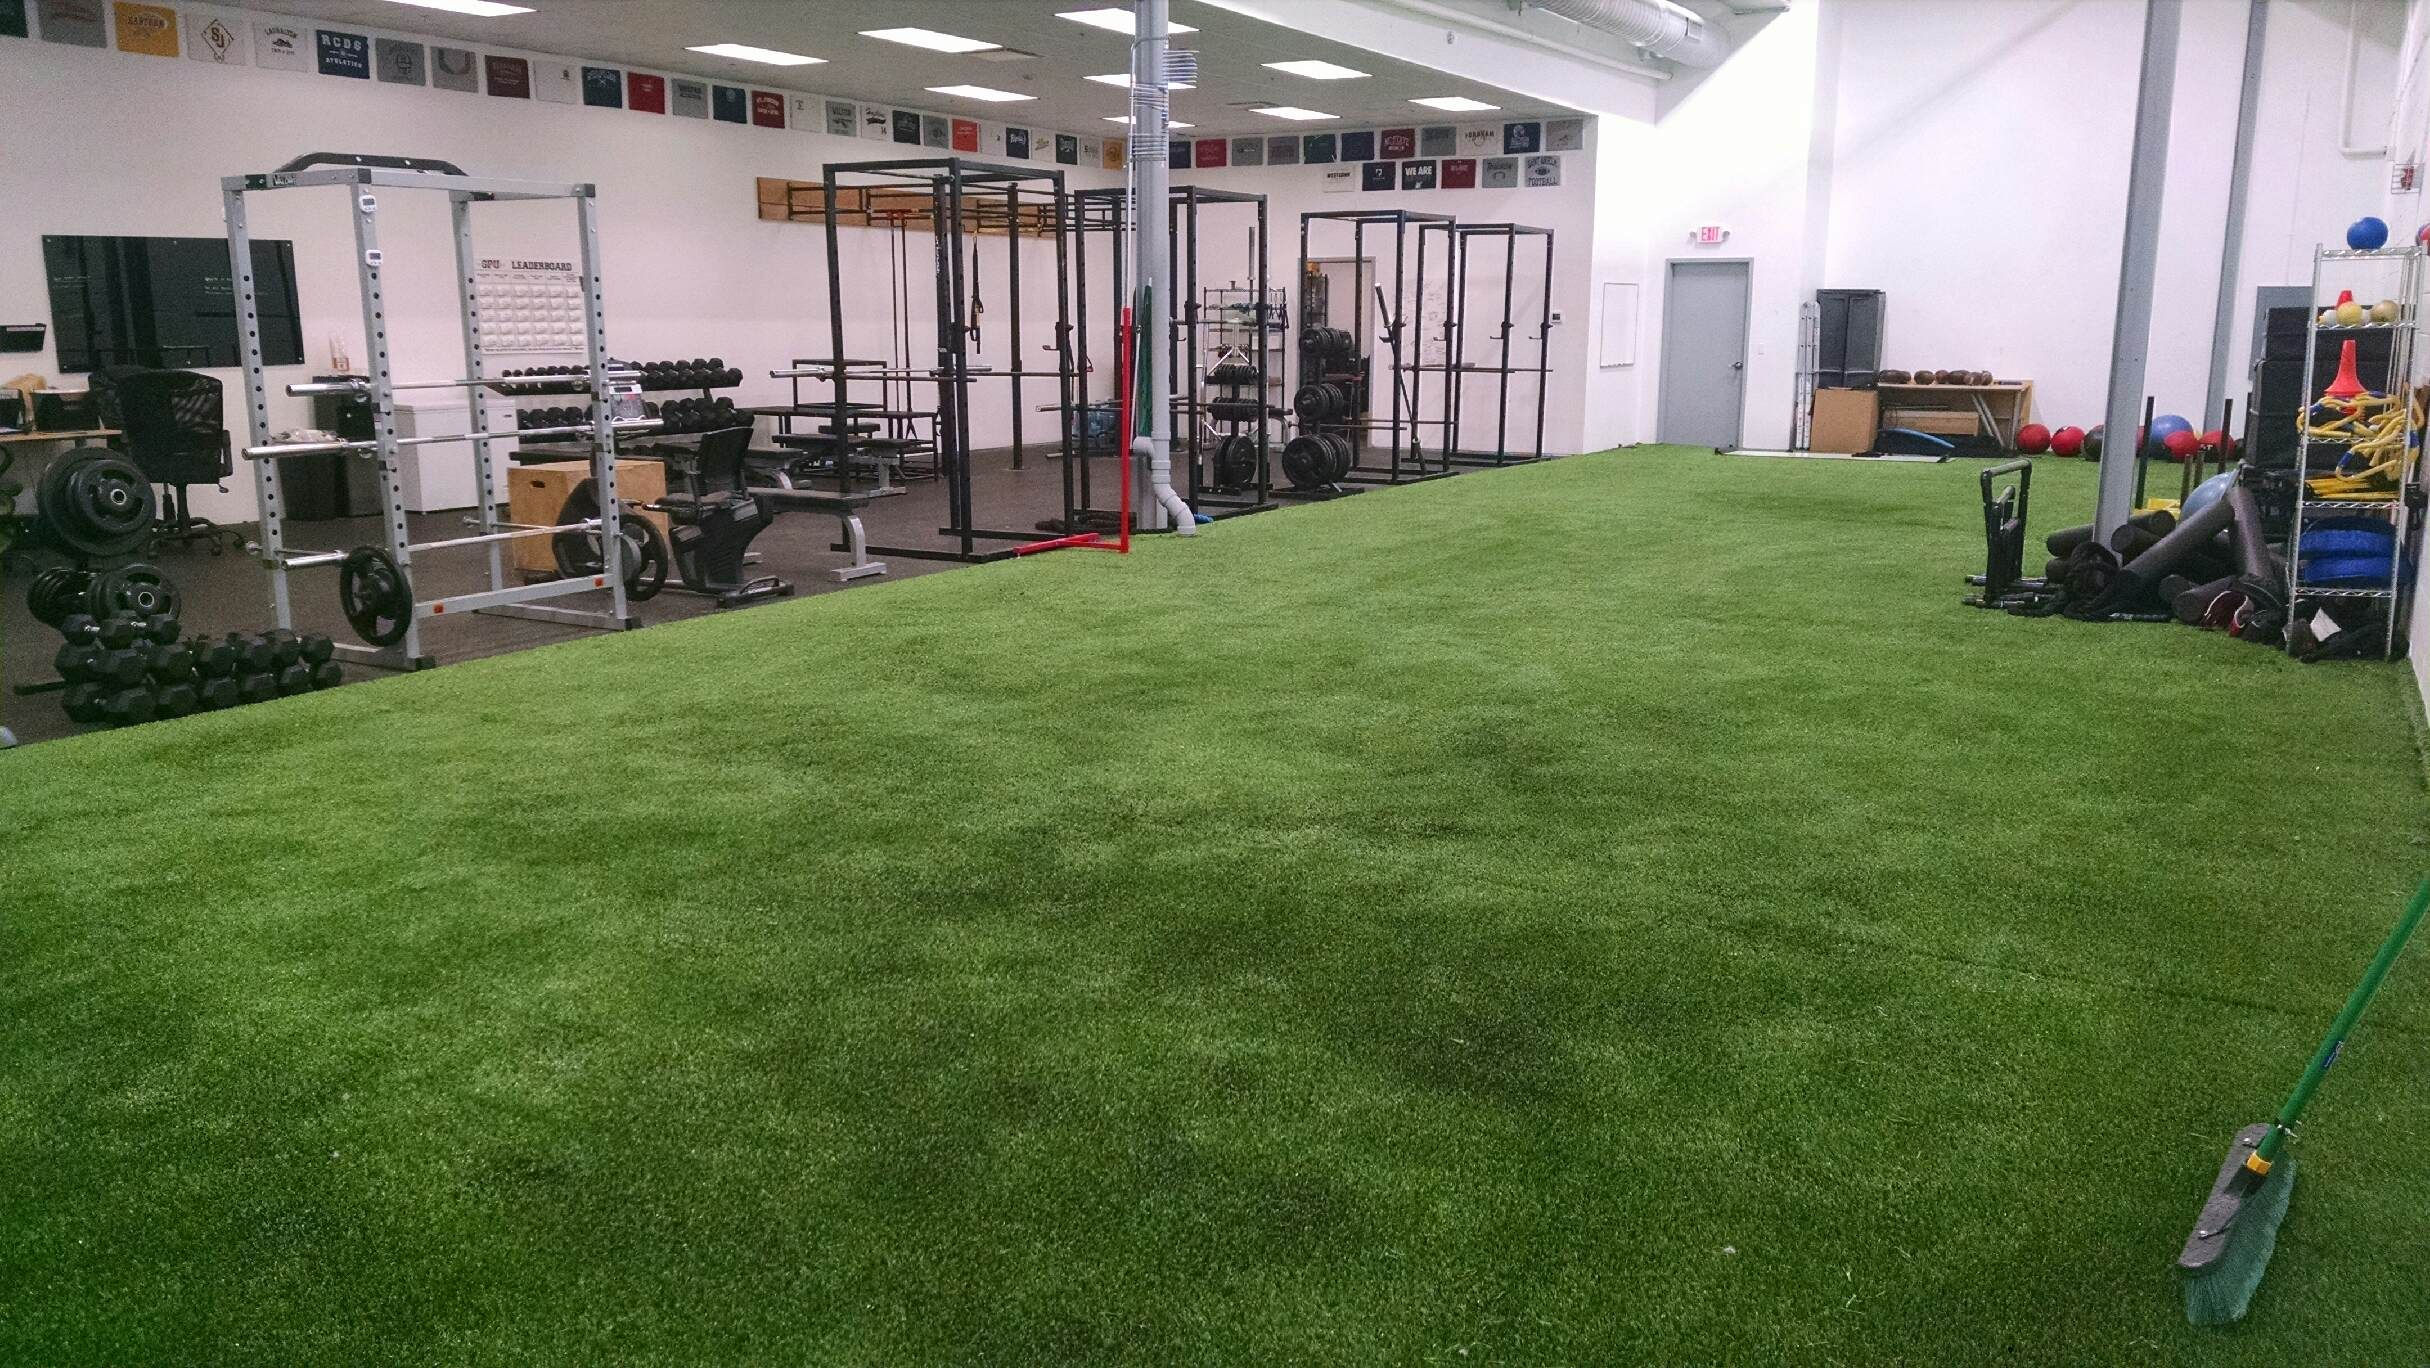 Featured Space Of The Week Sport Performance U Wilton Ct Click To Rent By The Hour Fitspace4fitpros Getgymspace Findf Gym Design Gym Life Pro Fitness